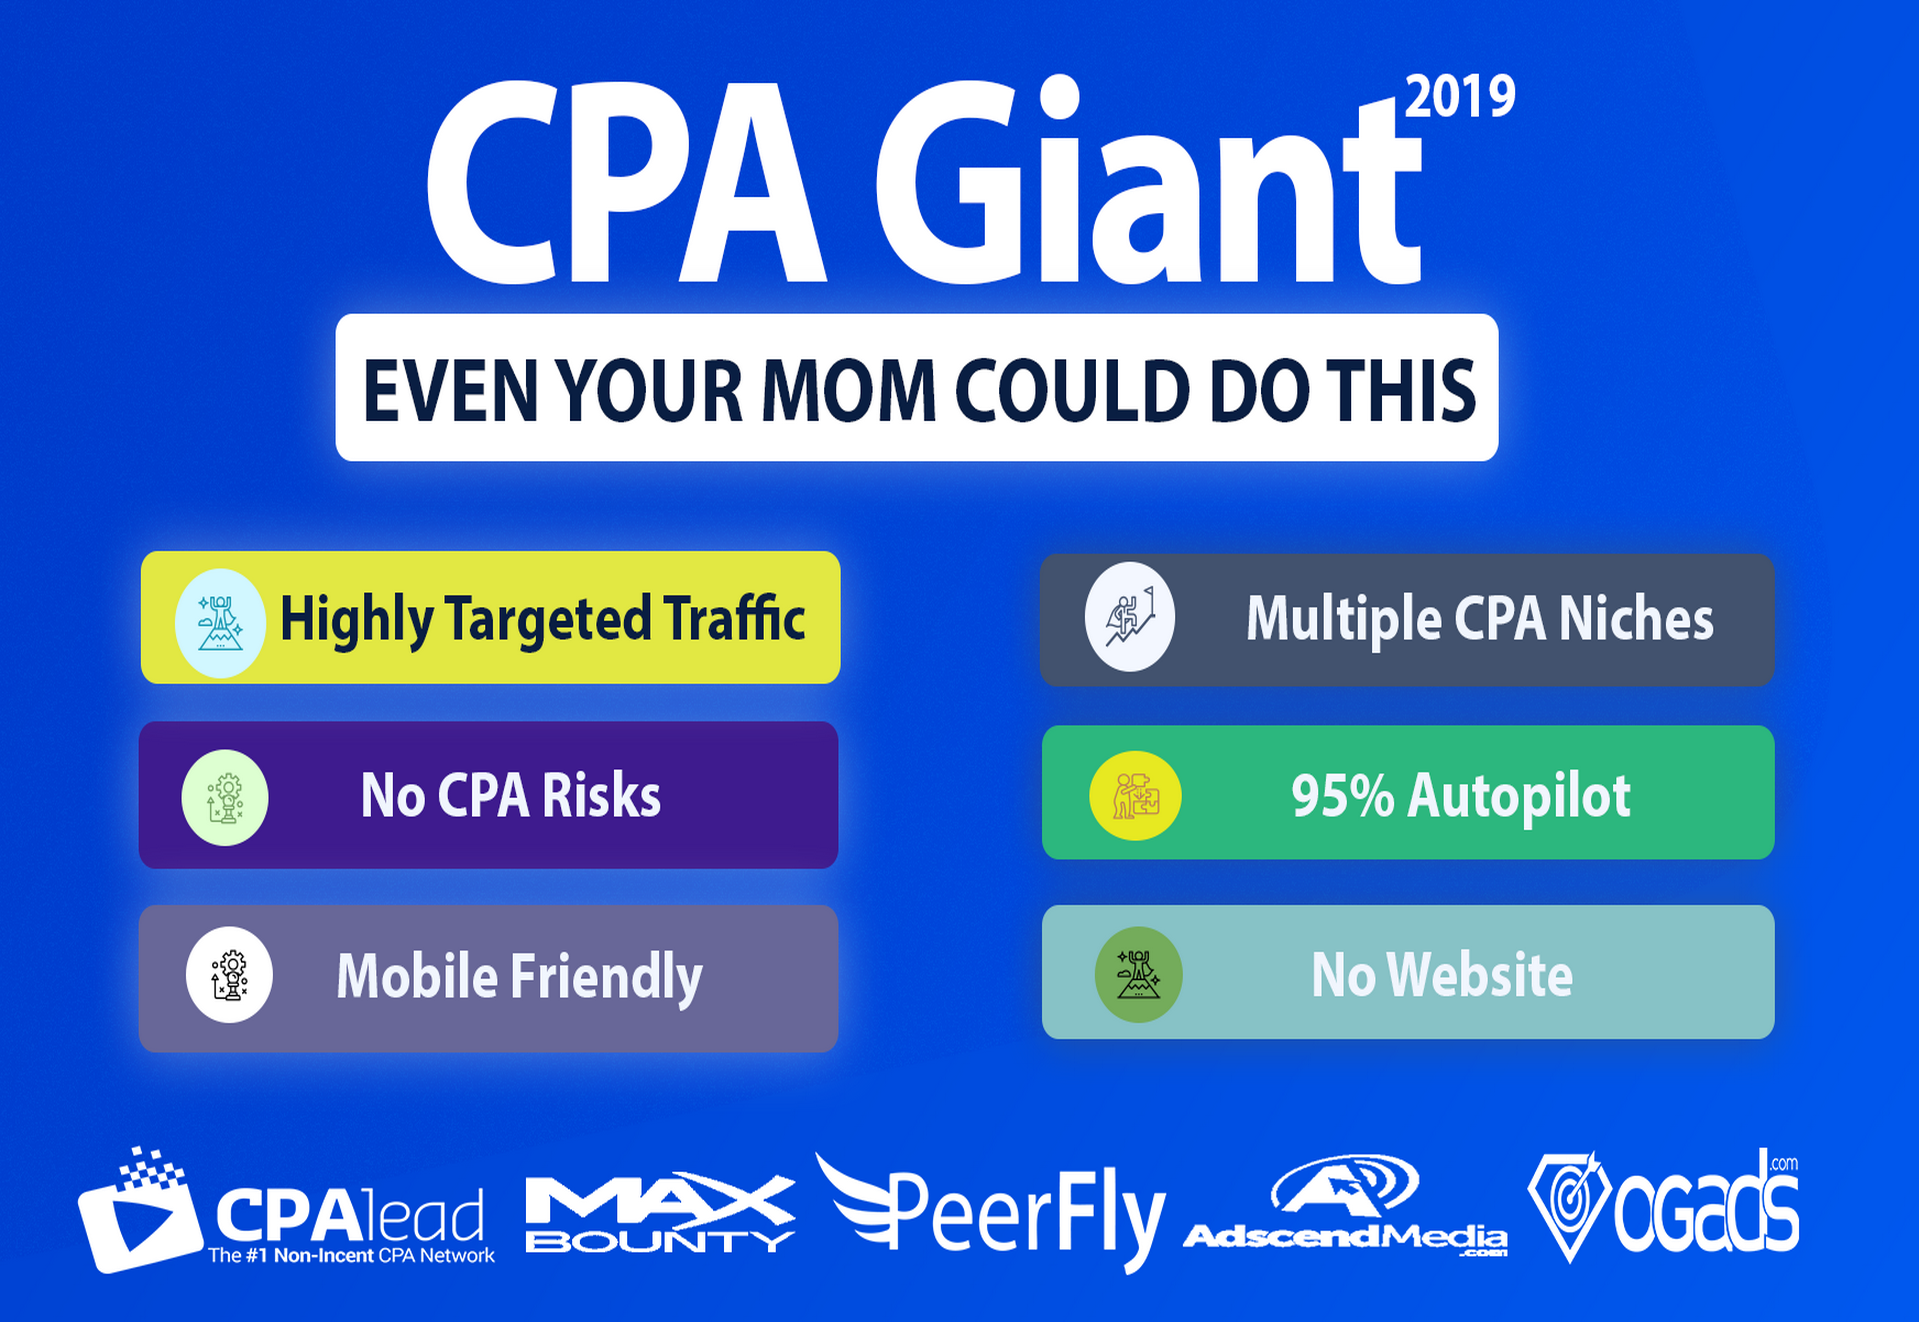 cpa giant